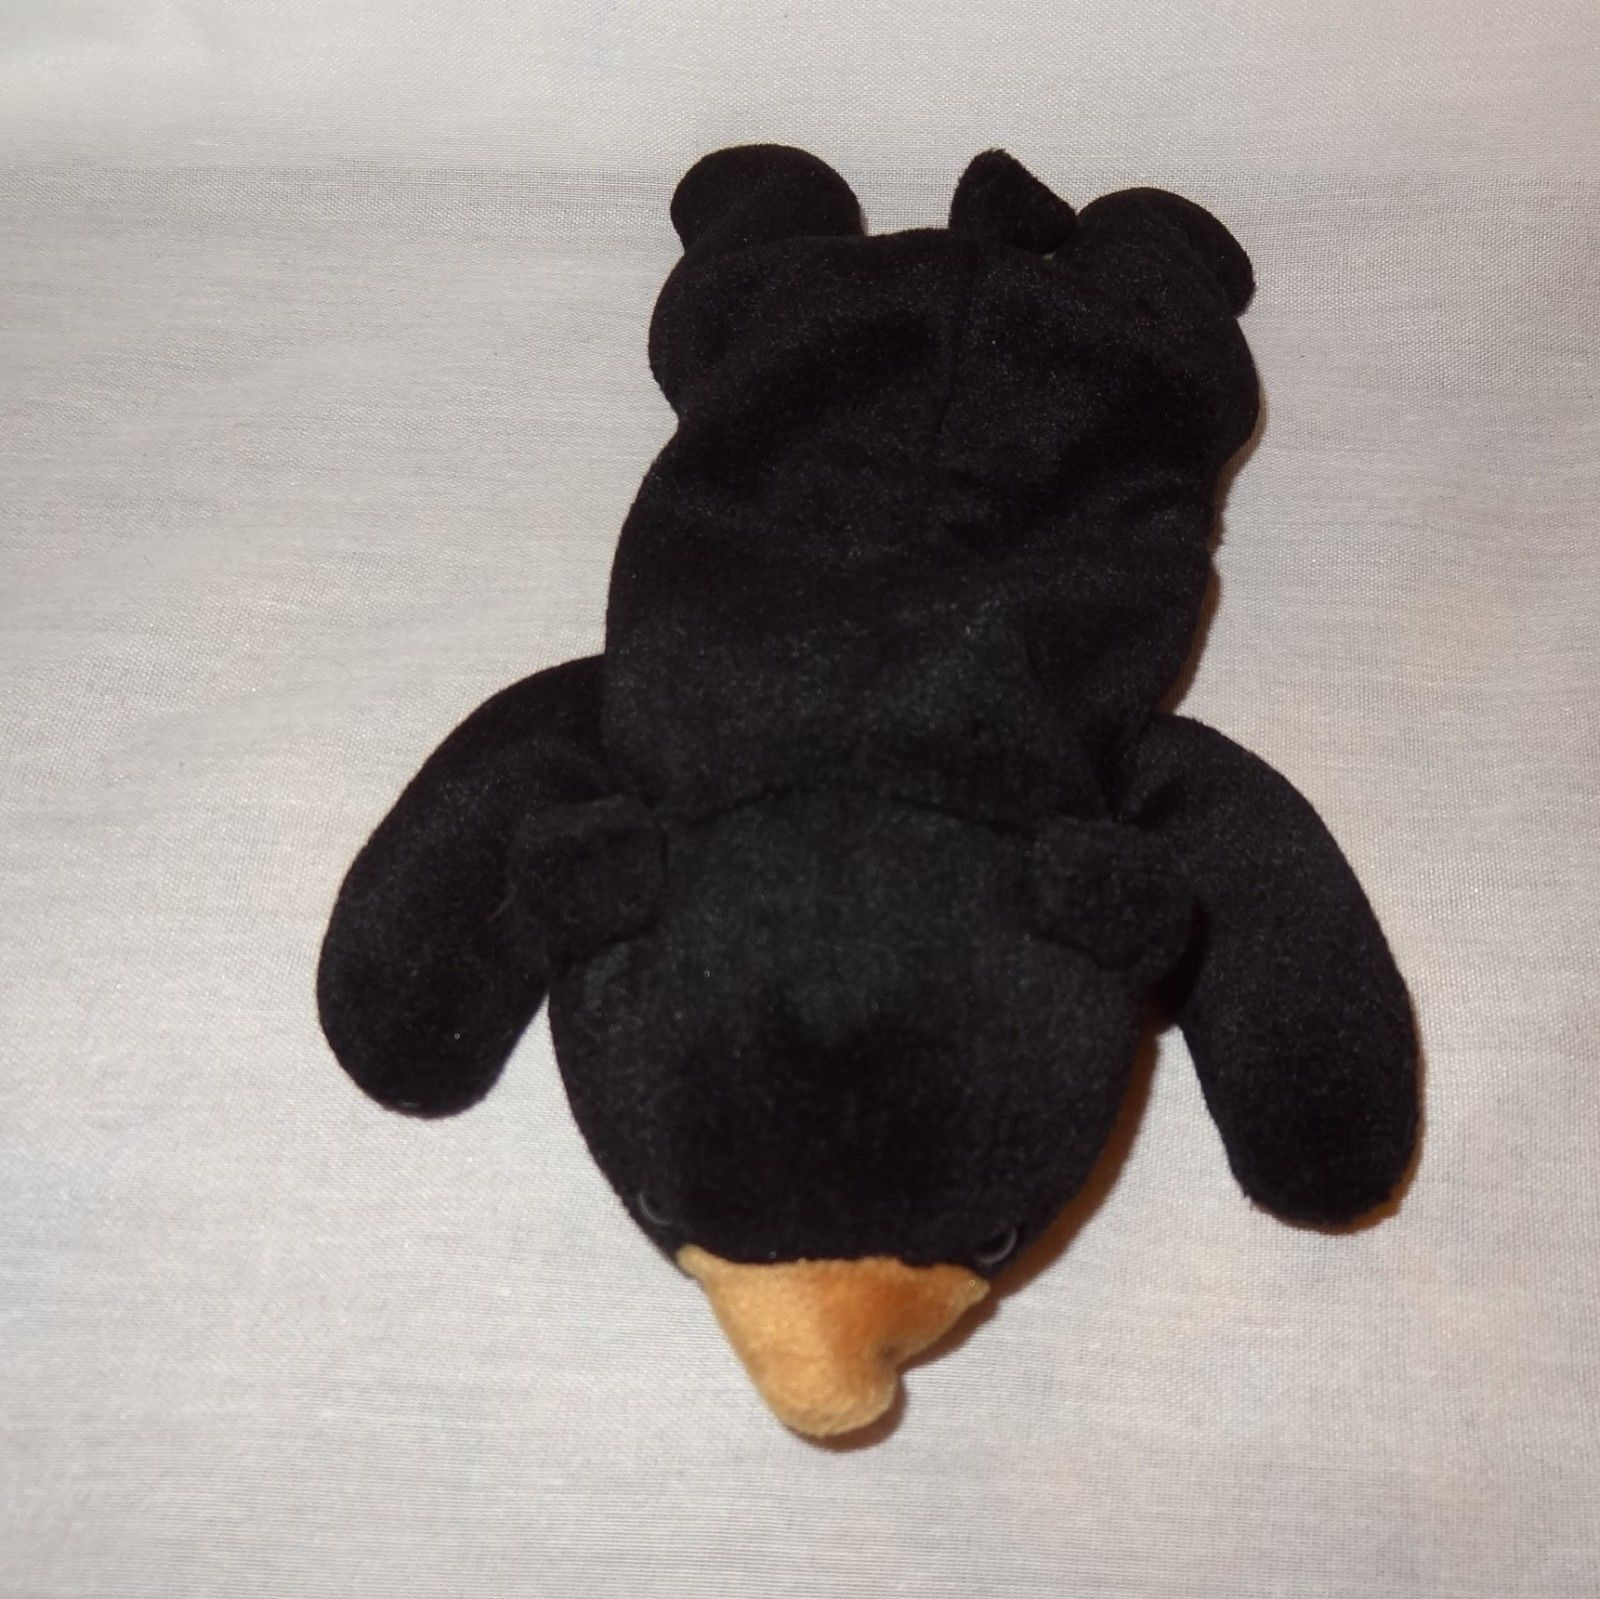 1547bede922 Black Bear Ty Beanie Baby Blackie Plush and 18 similar items. 57